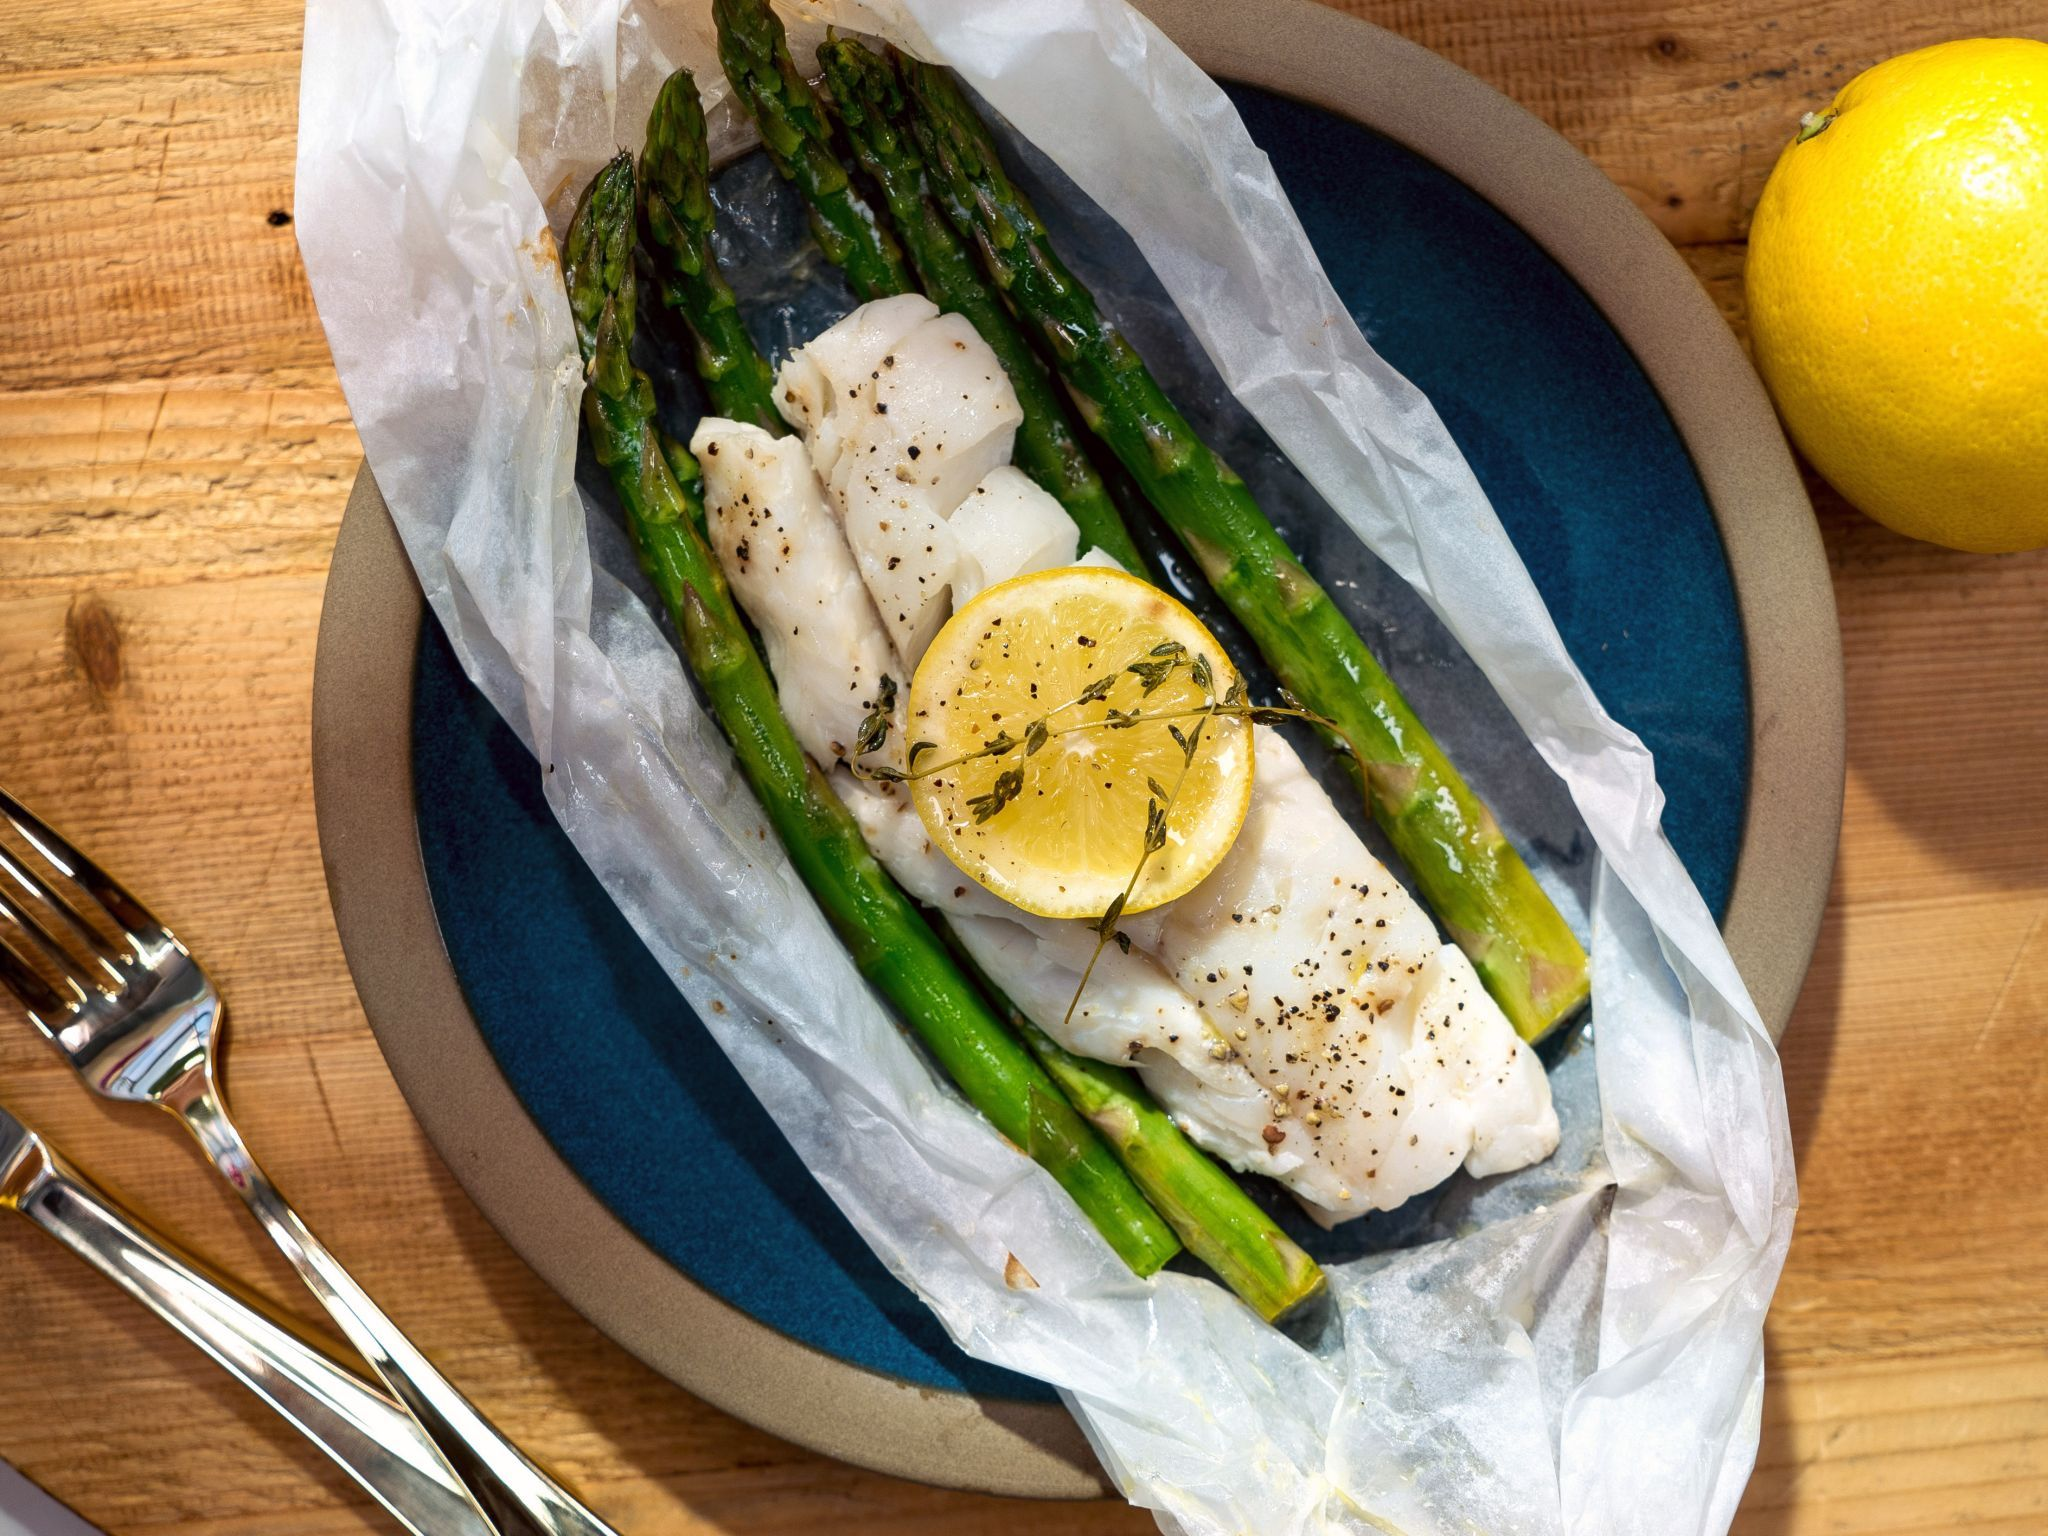 Package parceled cod recipe recipes sauces and asparagus for Grilled cod fish recipes